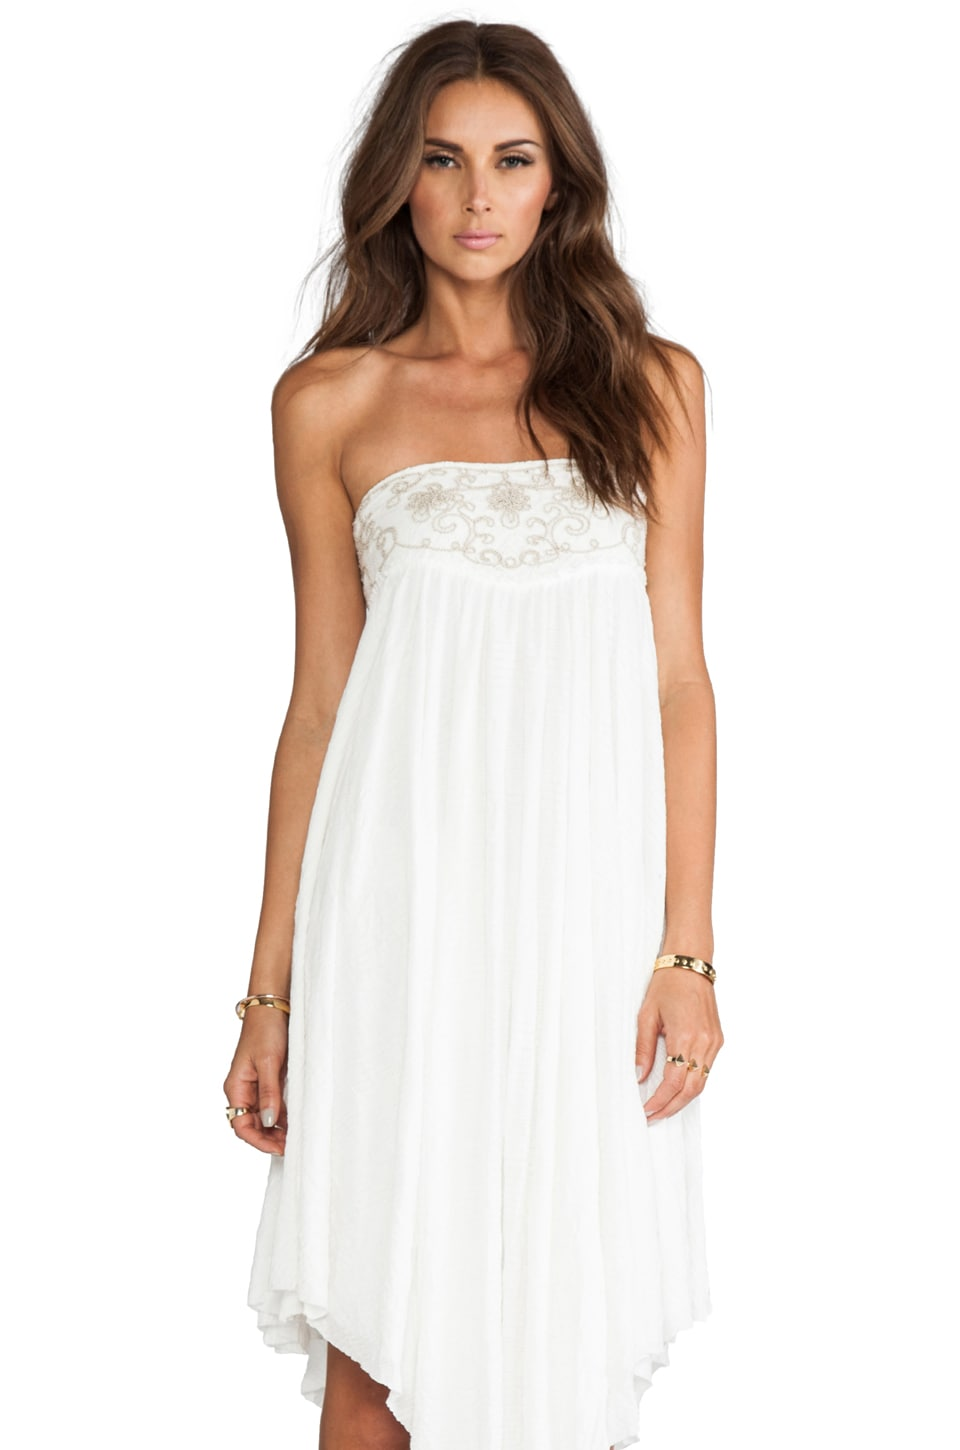 Free People Rhiannon Convertible Dress/Skirt in White